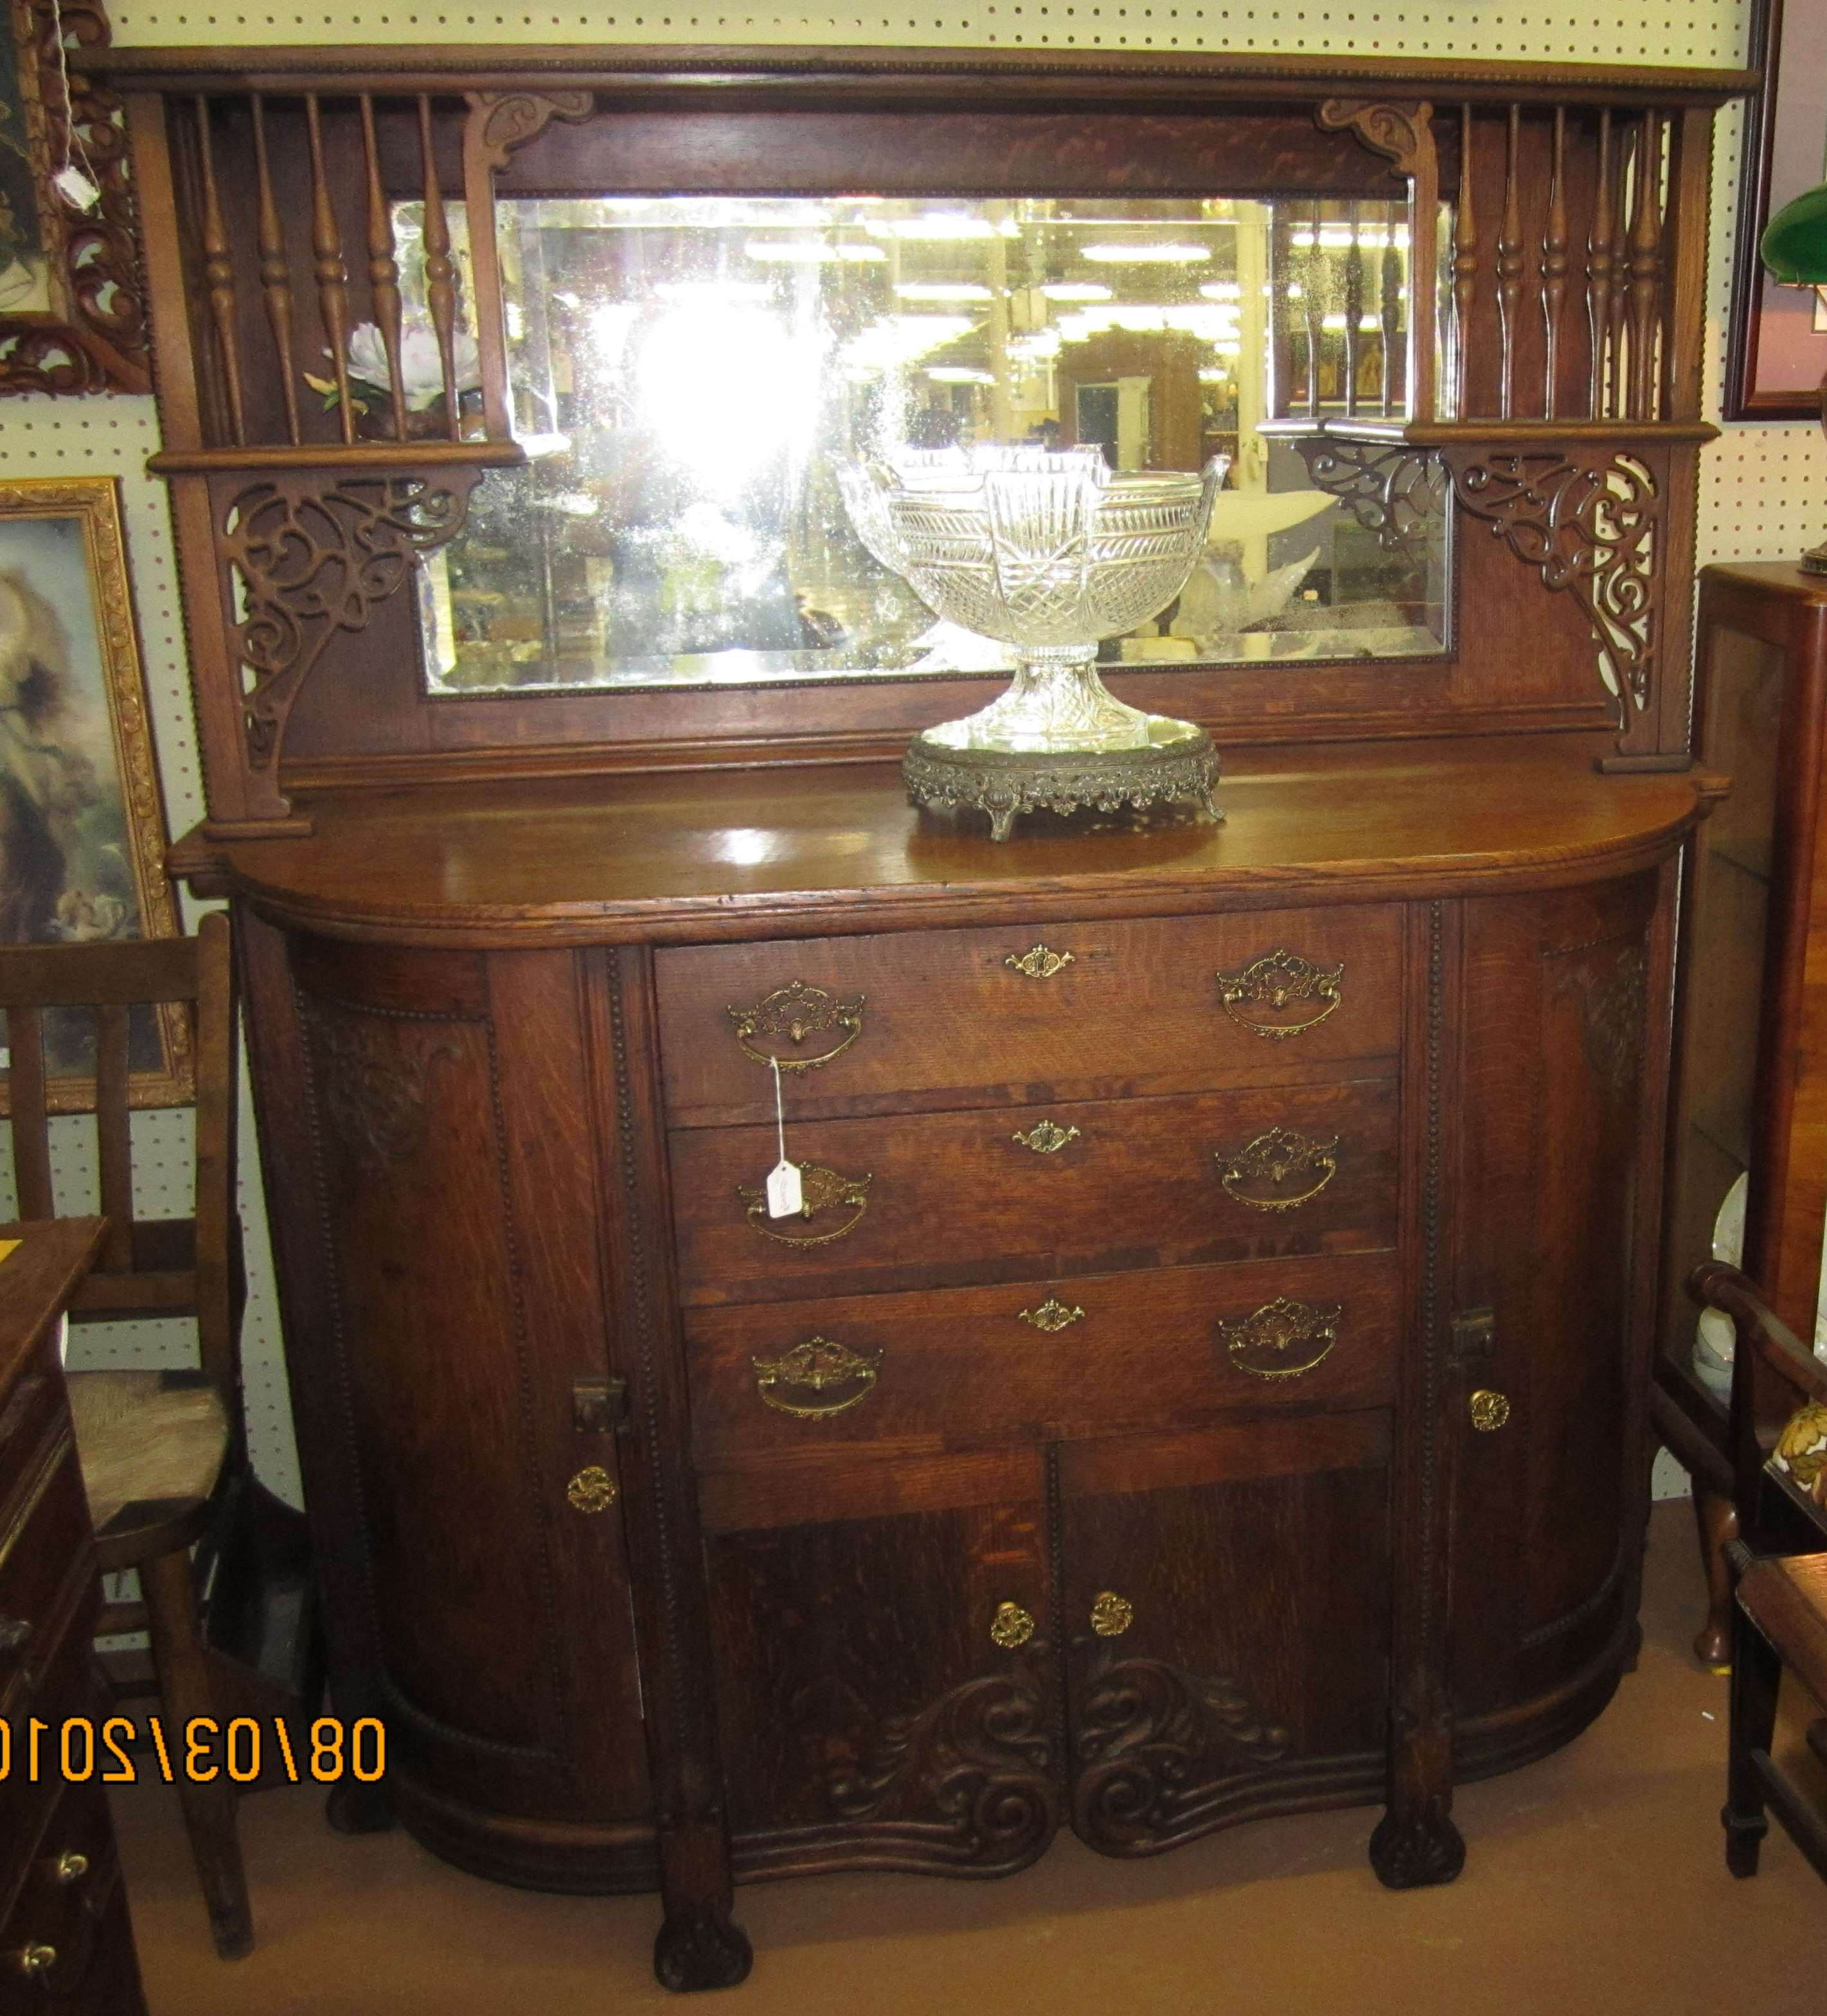 1800's American Oak Sideboard/buffet For Sale | Antiques Regarding Antique Sideboards And Buffets (View 1 of 20)